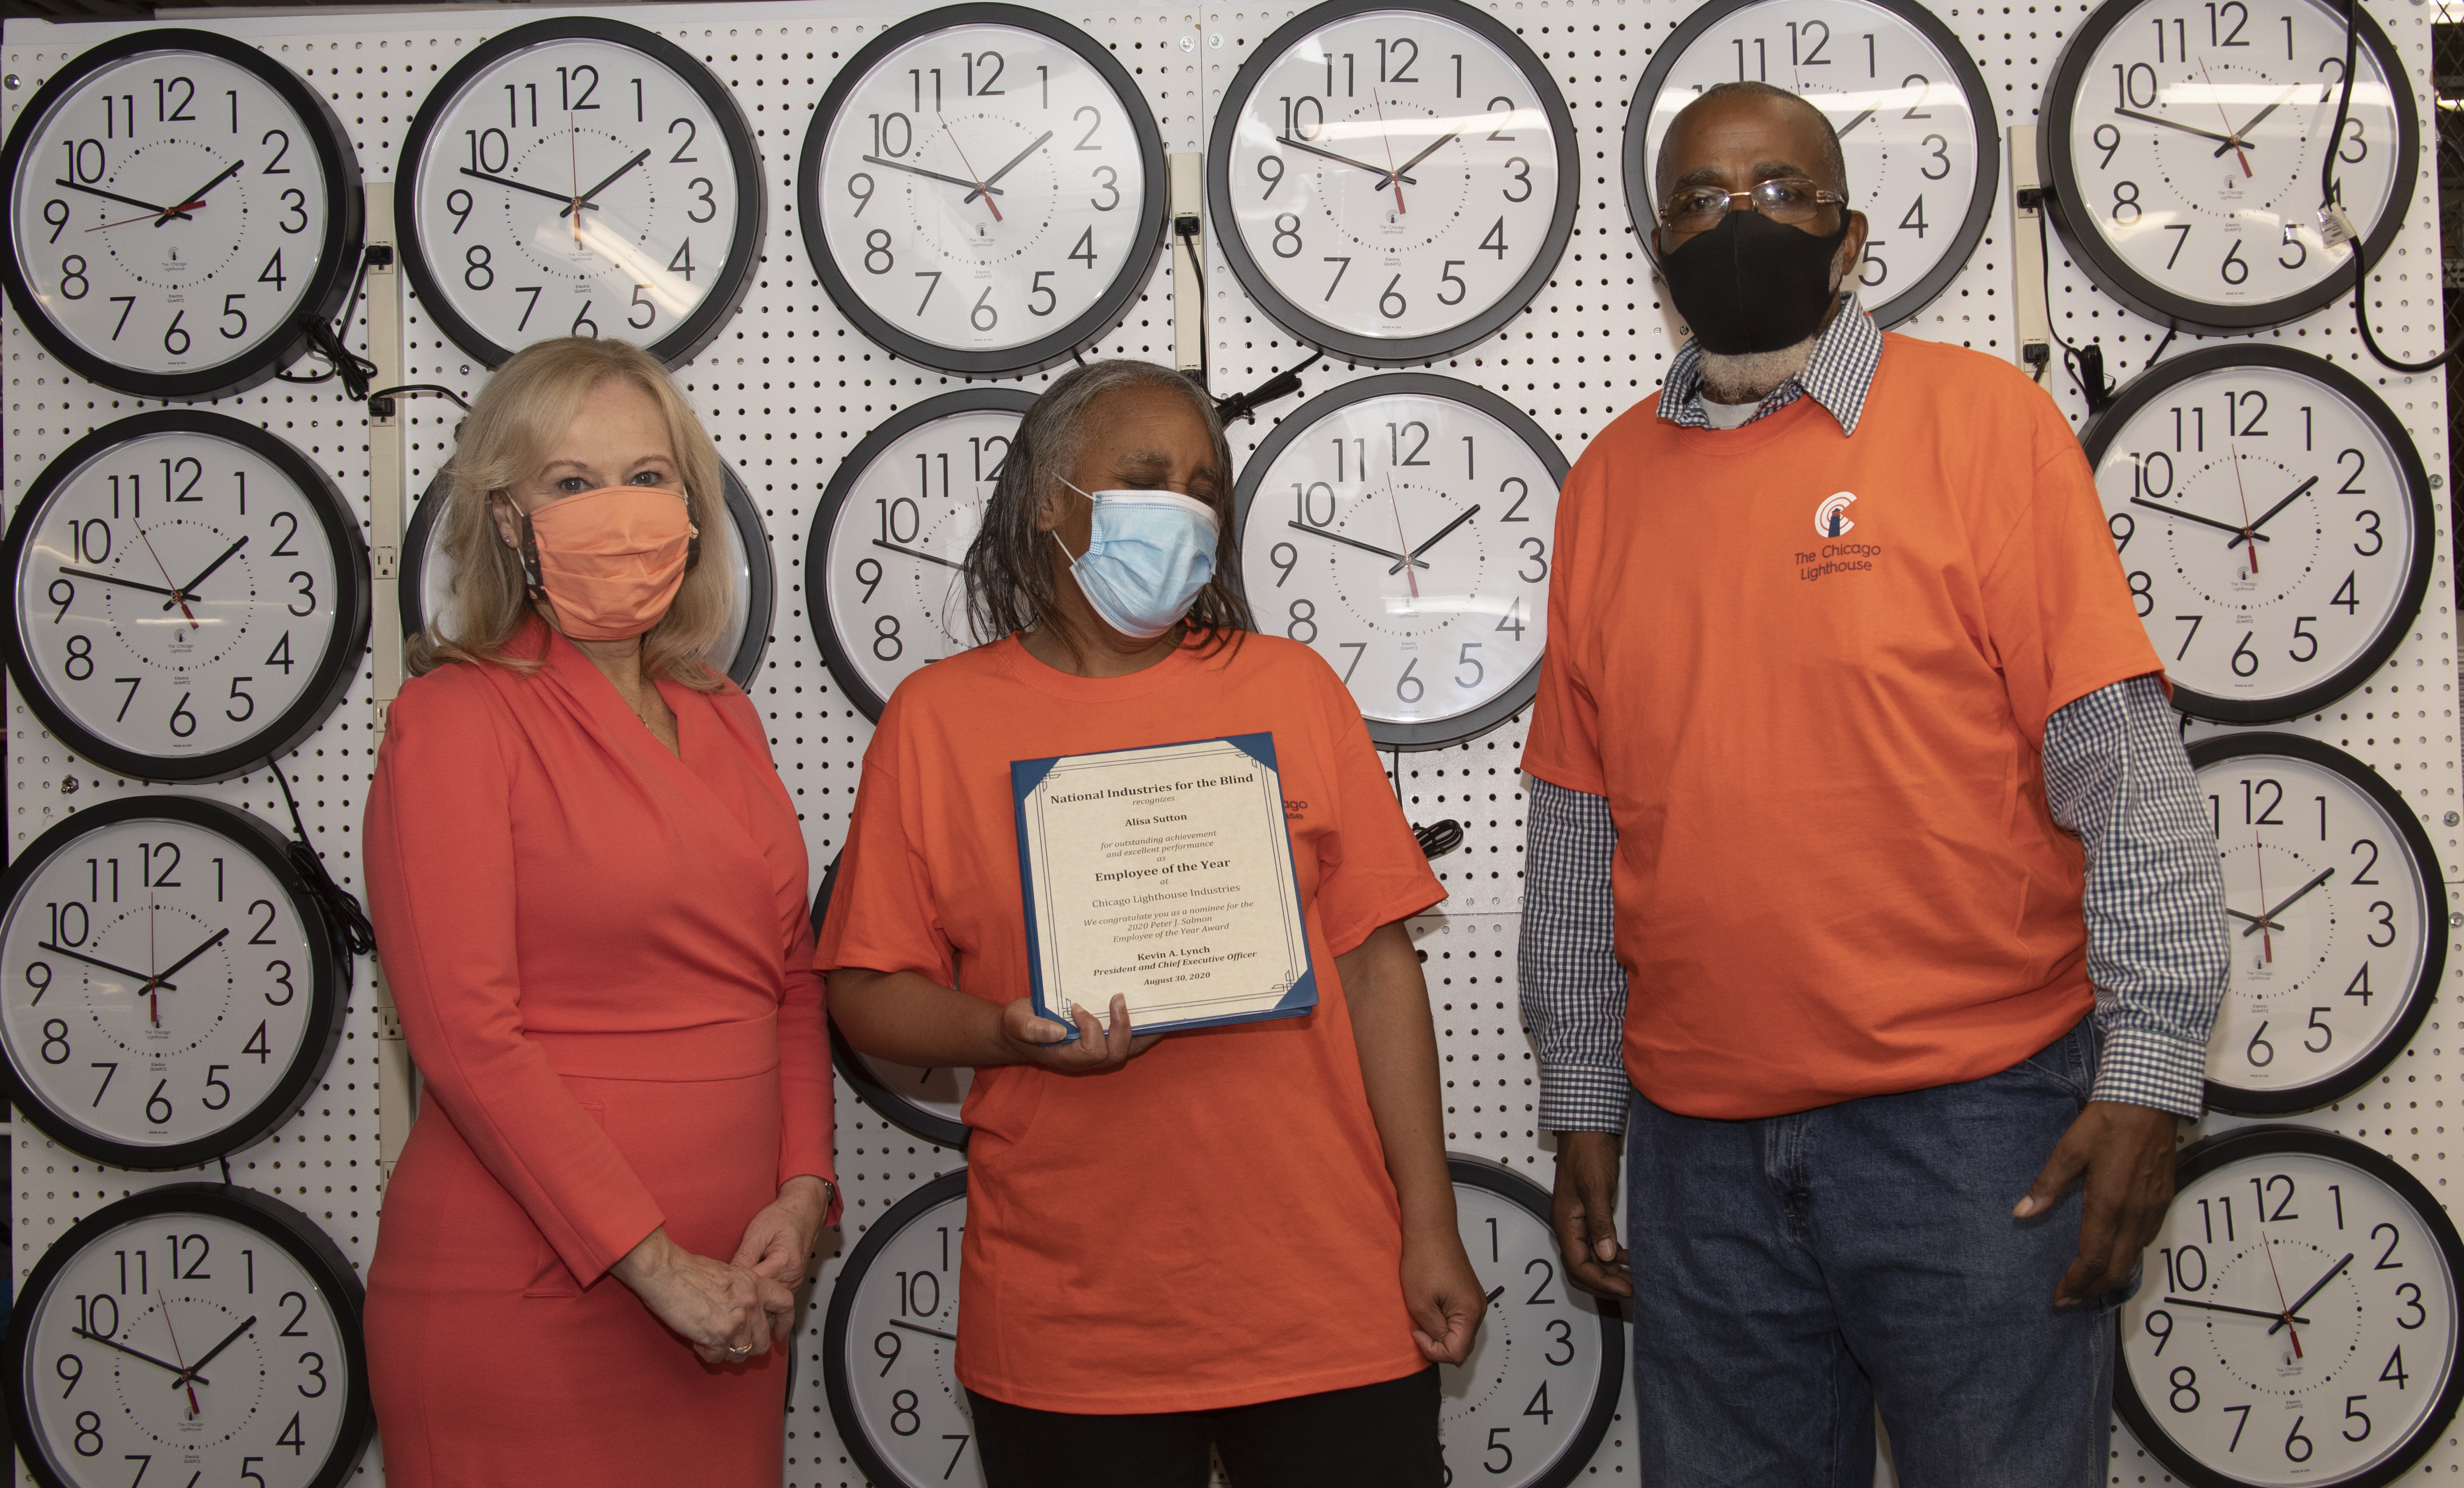 Dr. Janet Szlyk presents a certificate to Alisa Sutton who works as a clock assembler for Chicago Lighthouse Industries. Behind them is a testing wall of clocks.